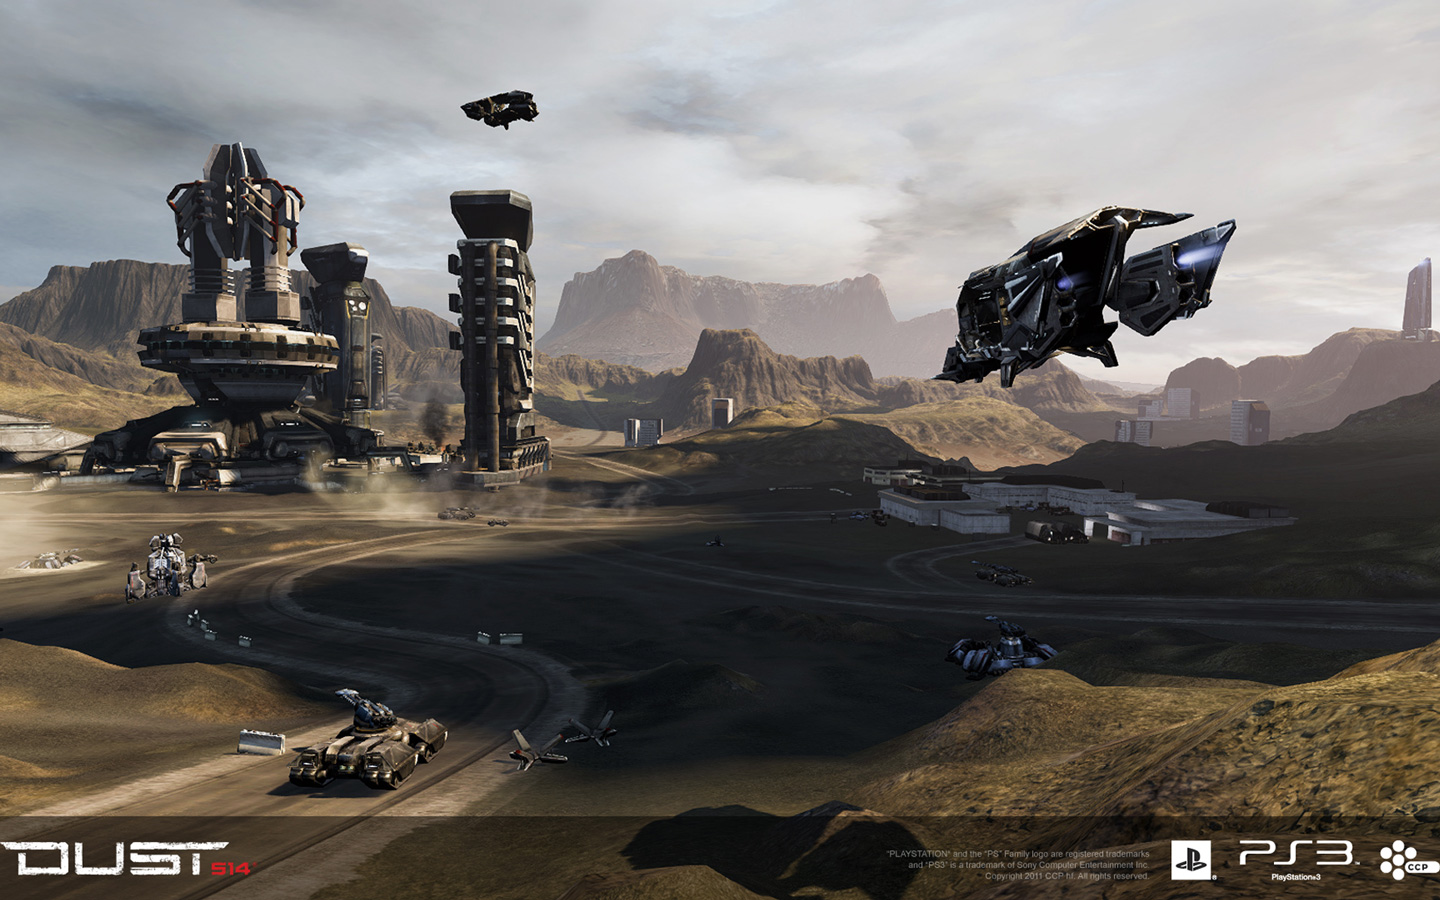 Free Dust 514 Wallpaper in 1440x900